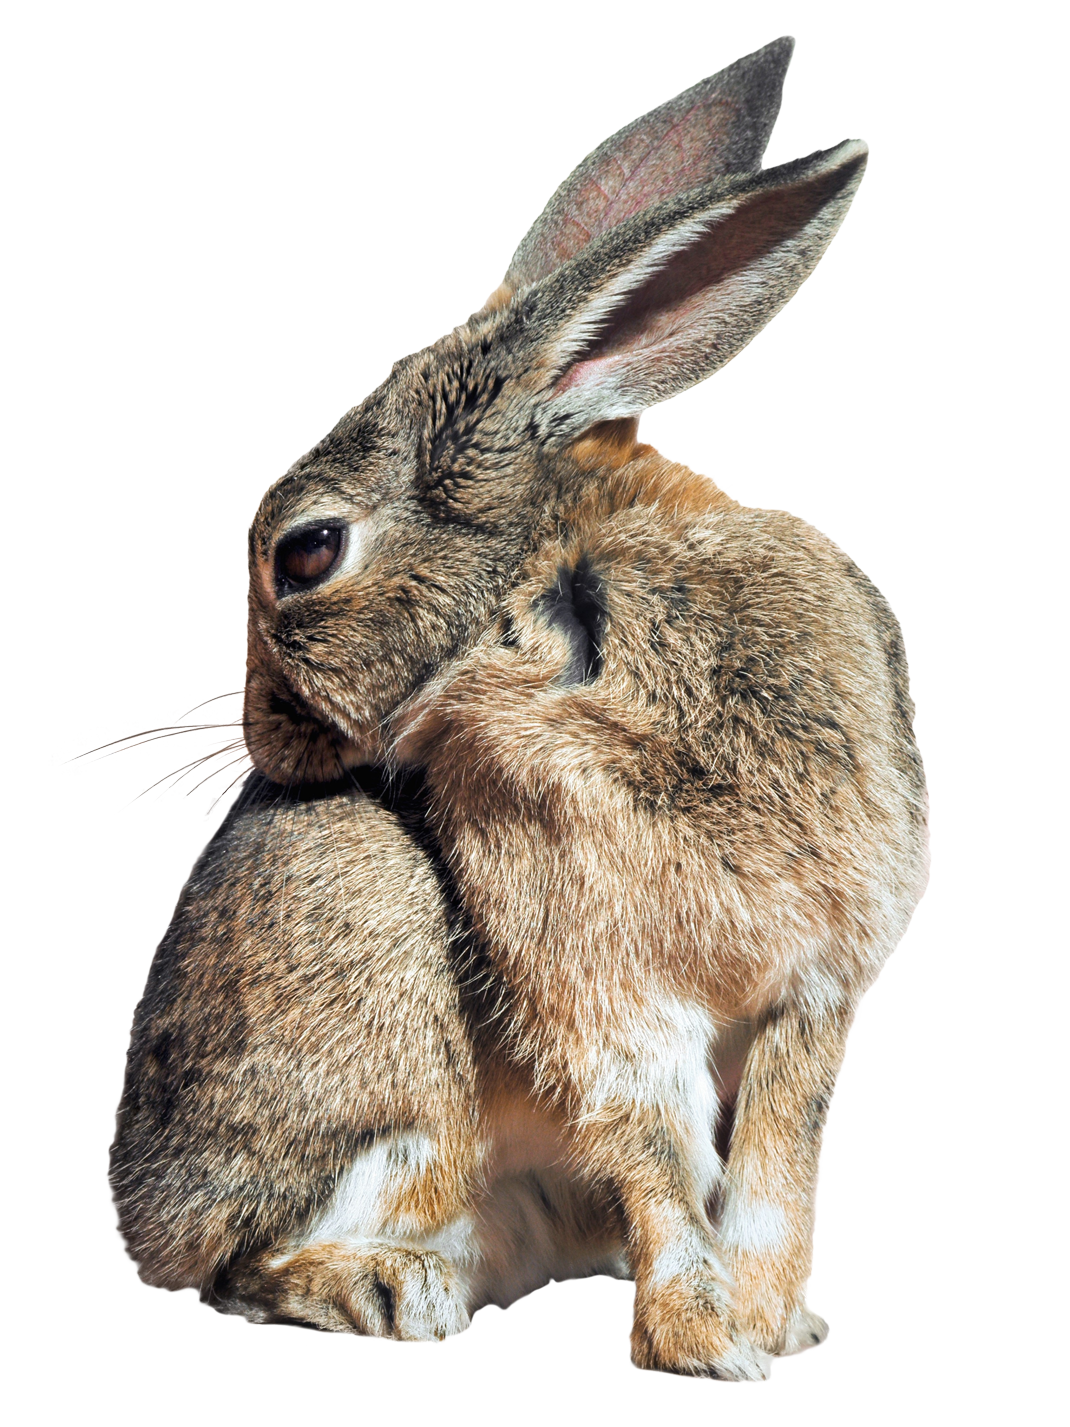 Bunny Rabbit PNG Image.